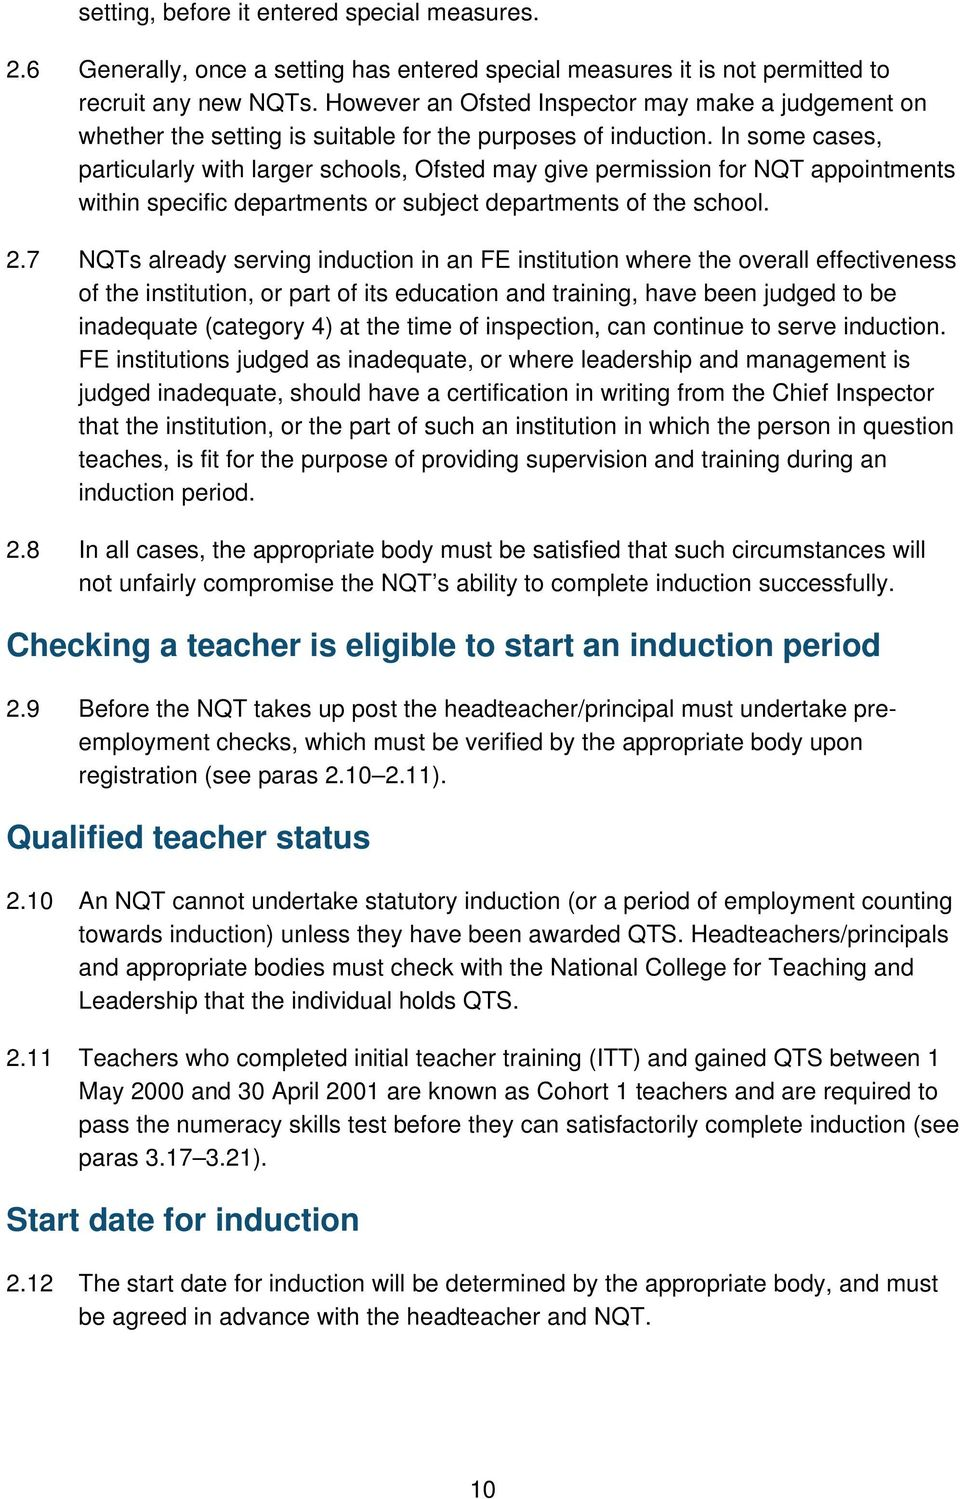 In some cases, particularly with larger schools, Ofsted may give permission for NQT appointments within specific departments or subject departments of the school. 2.